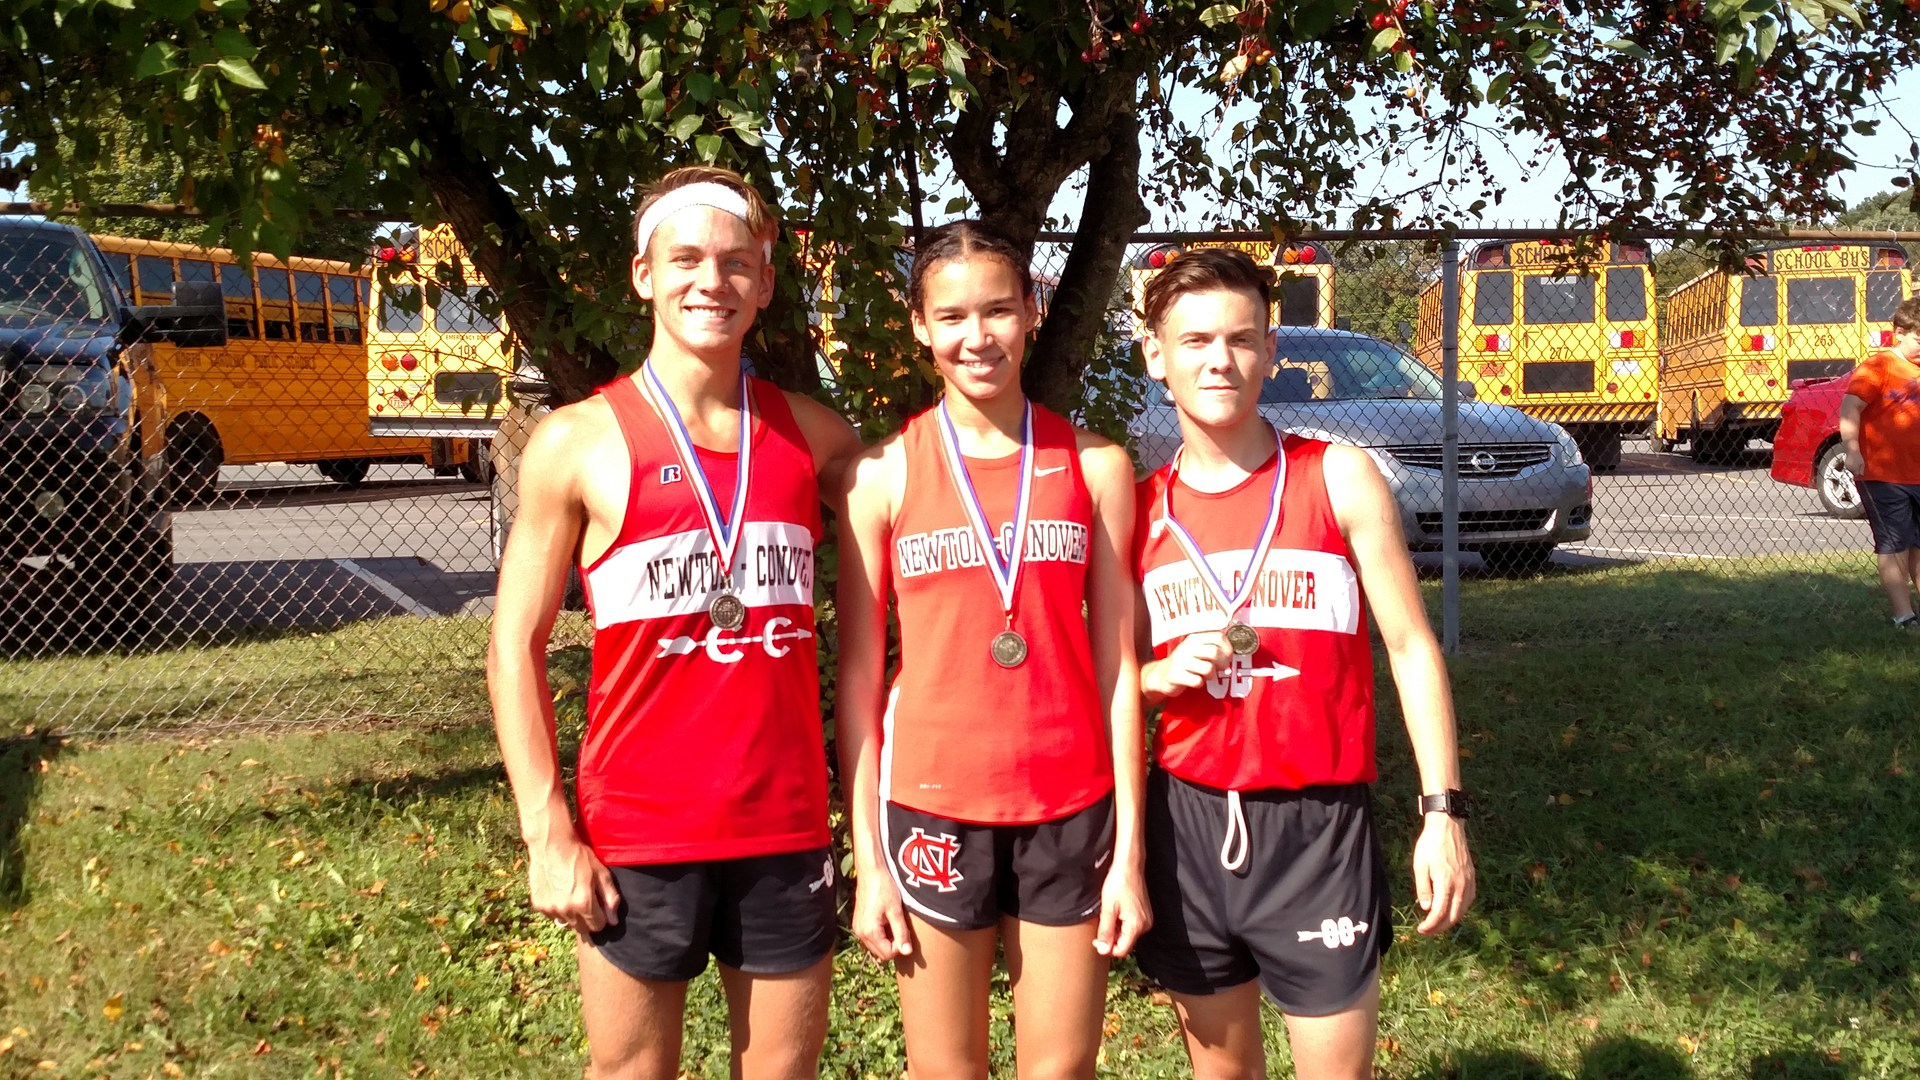 Caleb Henze, Mia  Macon, and Gunnar Taylor posing their medals after finishing in the top 10 at the Freedom Invitational XC meet on 9/16/17.